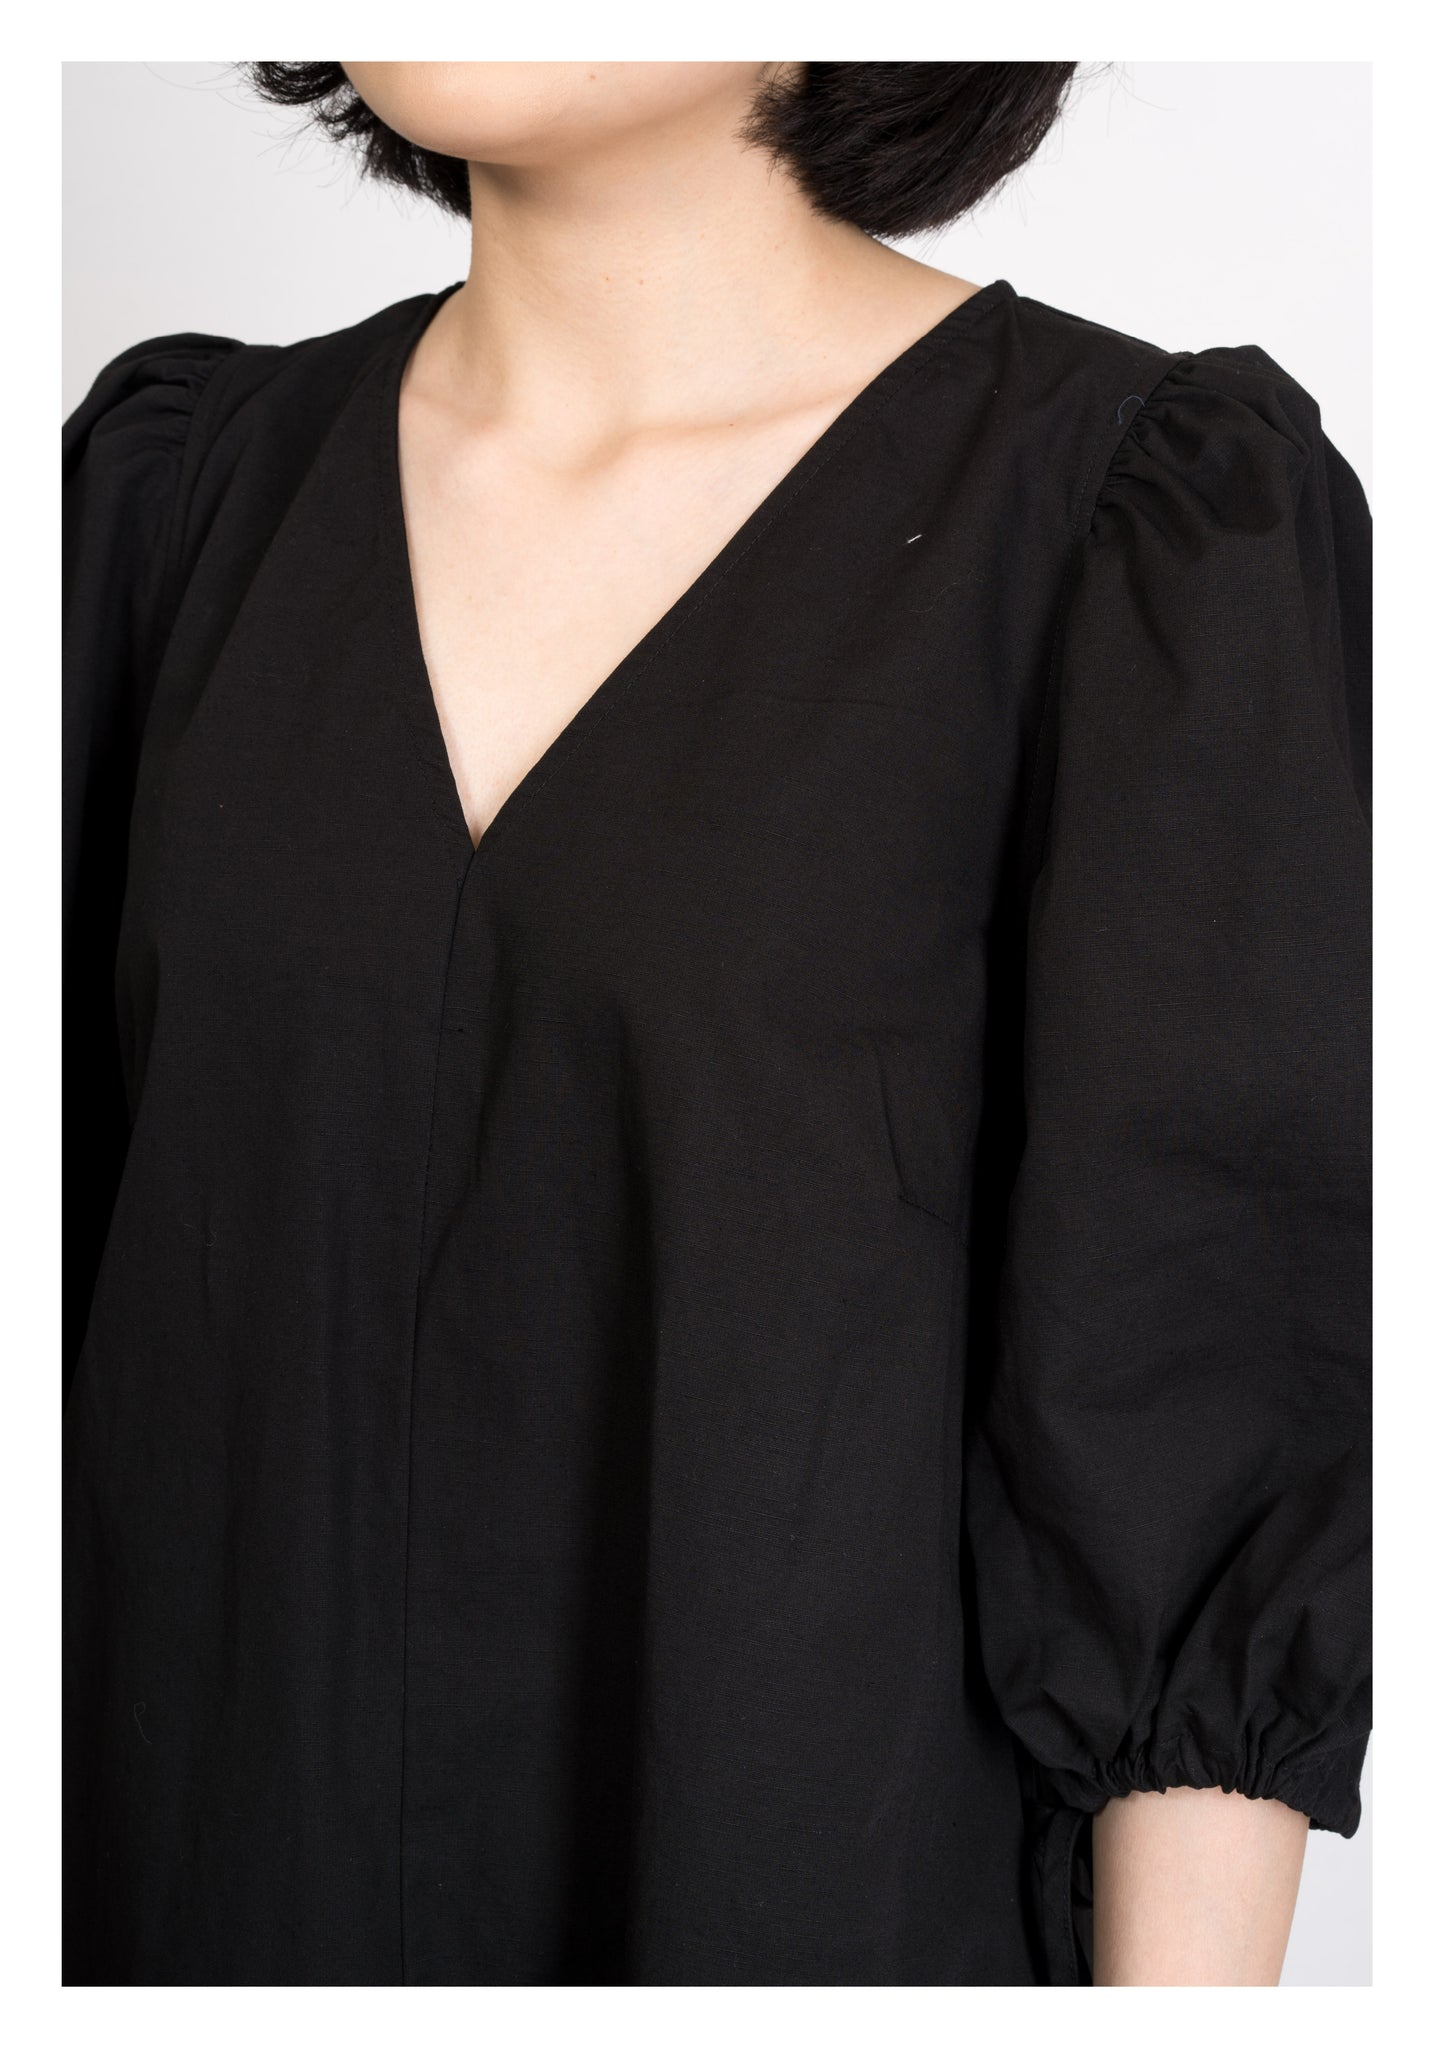 V Neck Puff Sleeves Dress Black - whoami